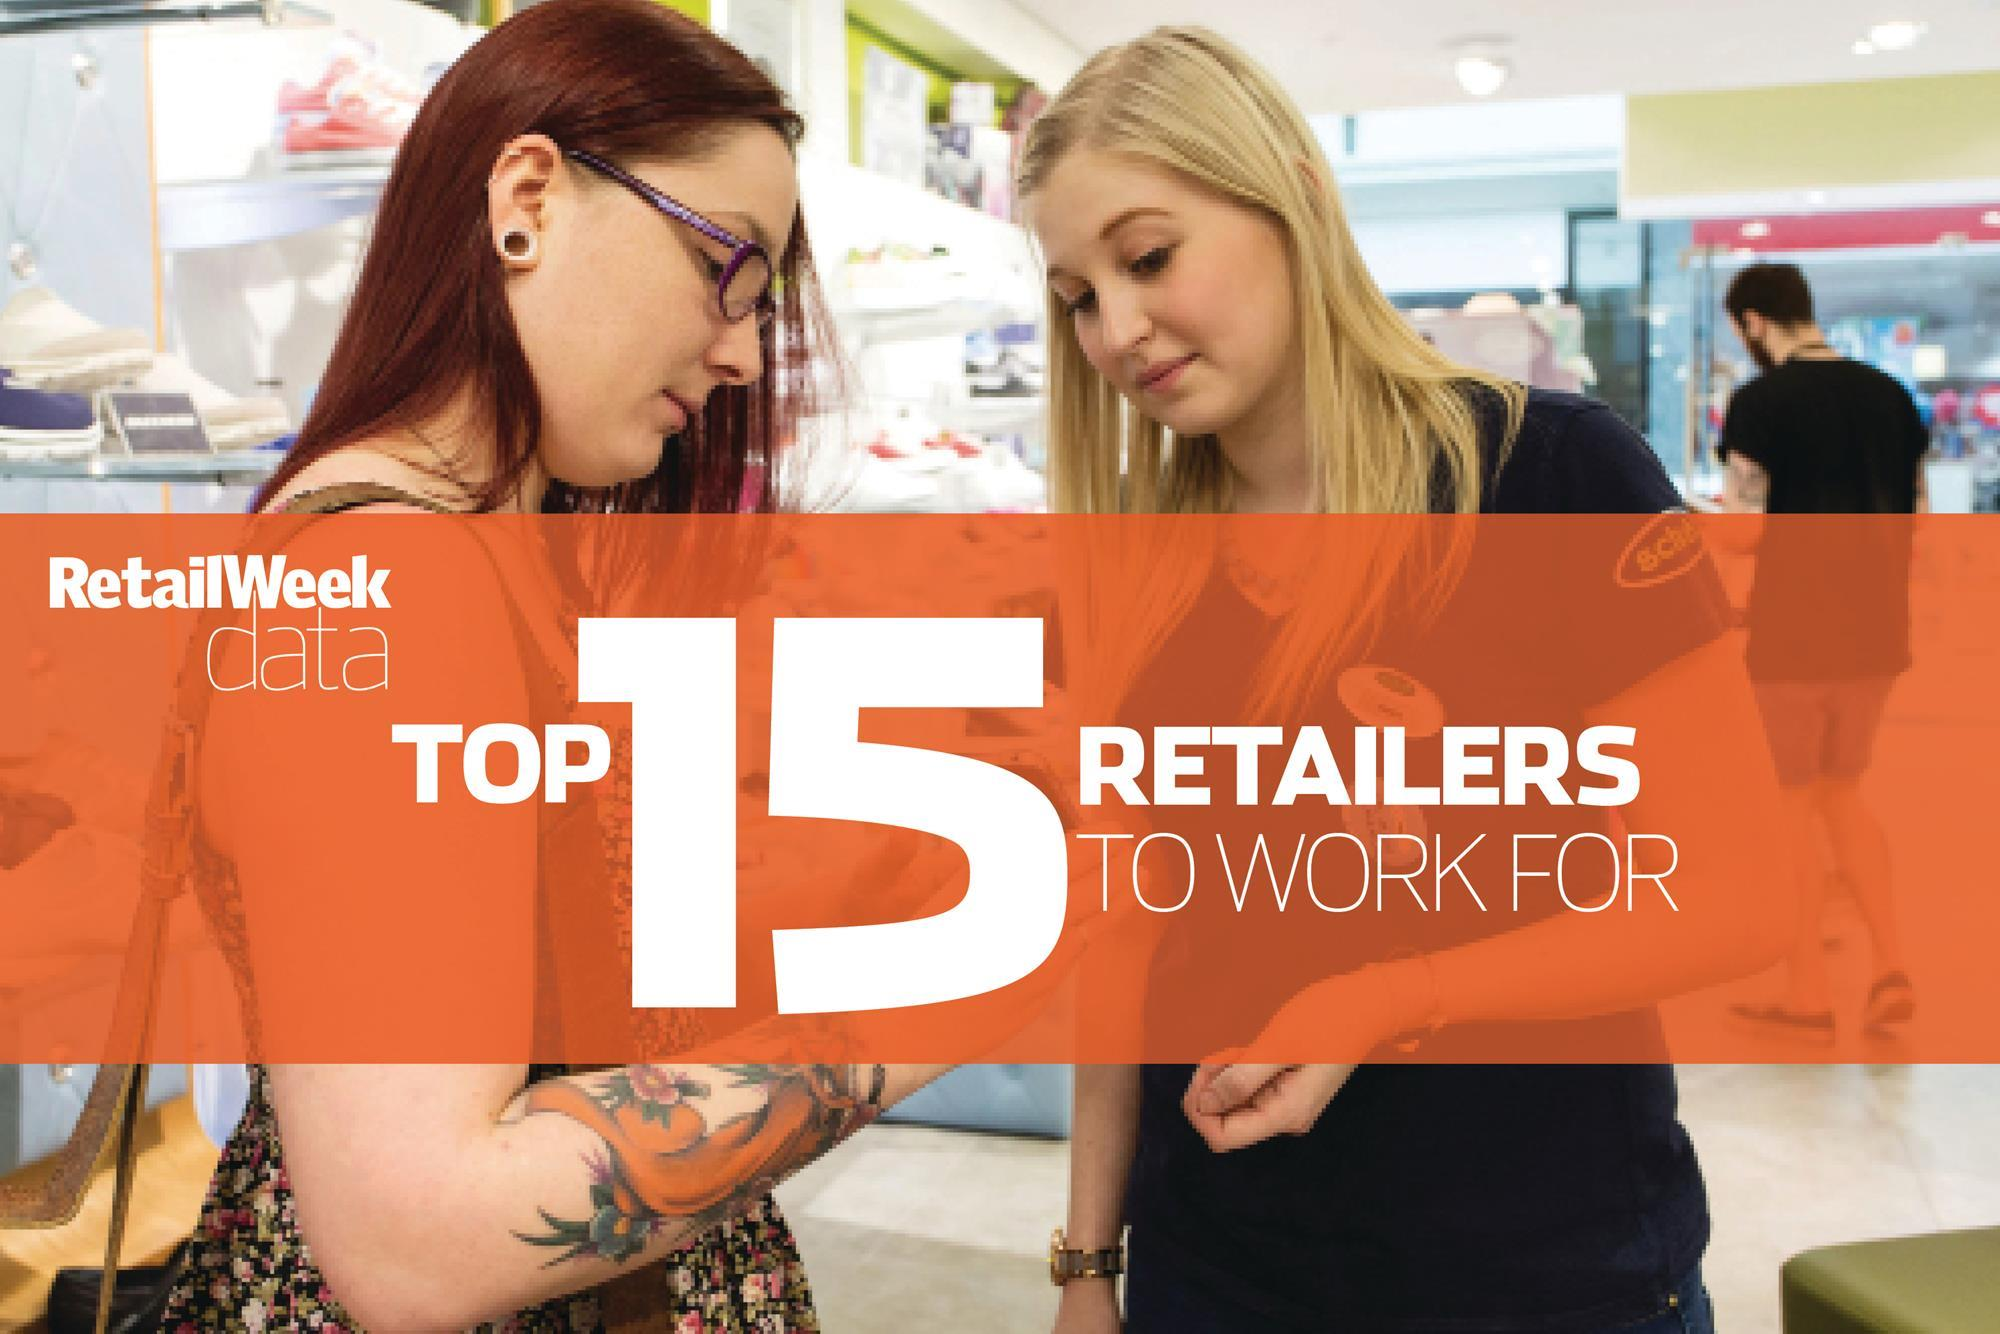 data the best retailers to work for in the uk according to the 15 best retailers to work for in the uk in 2015 according to employees